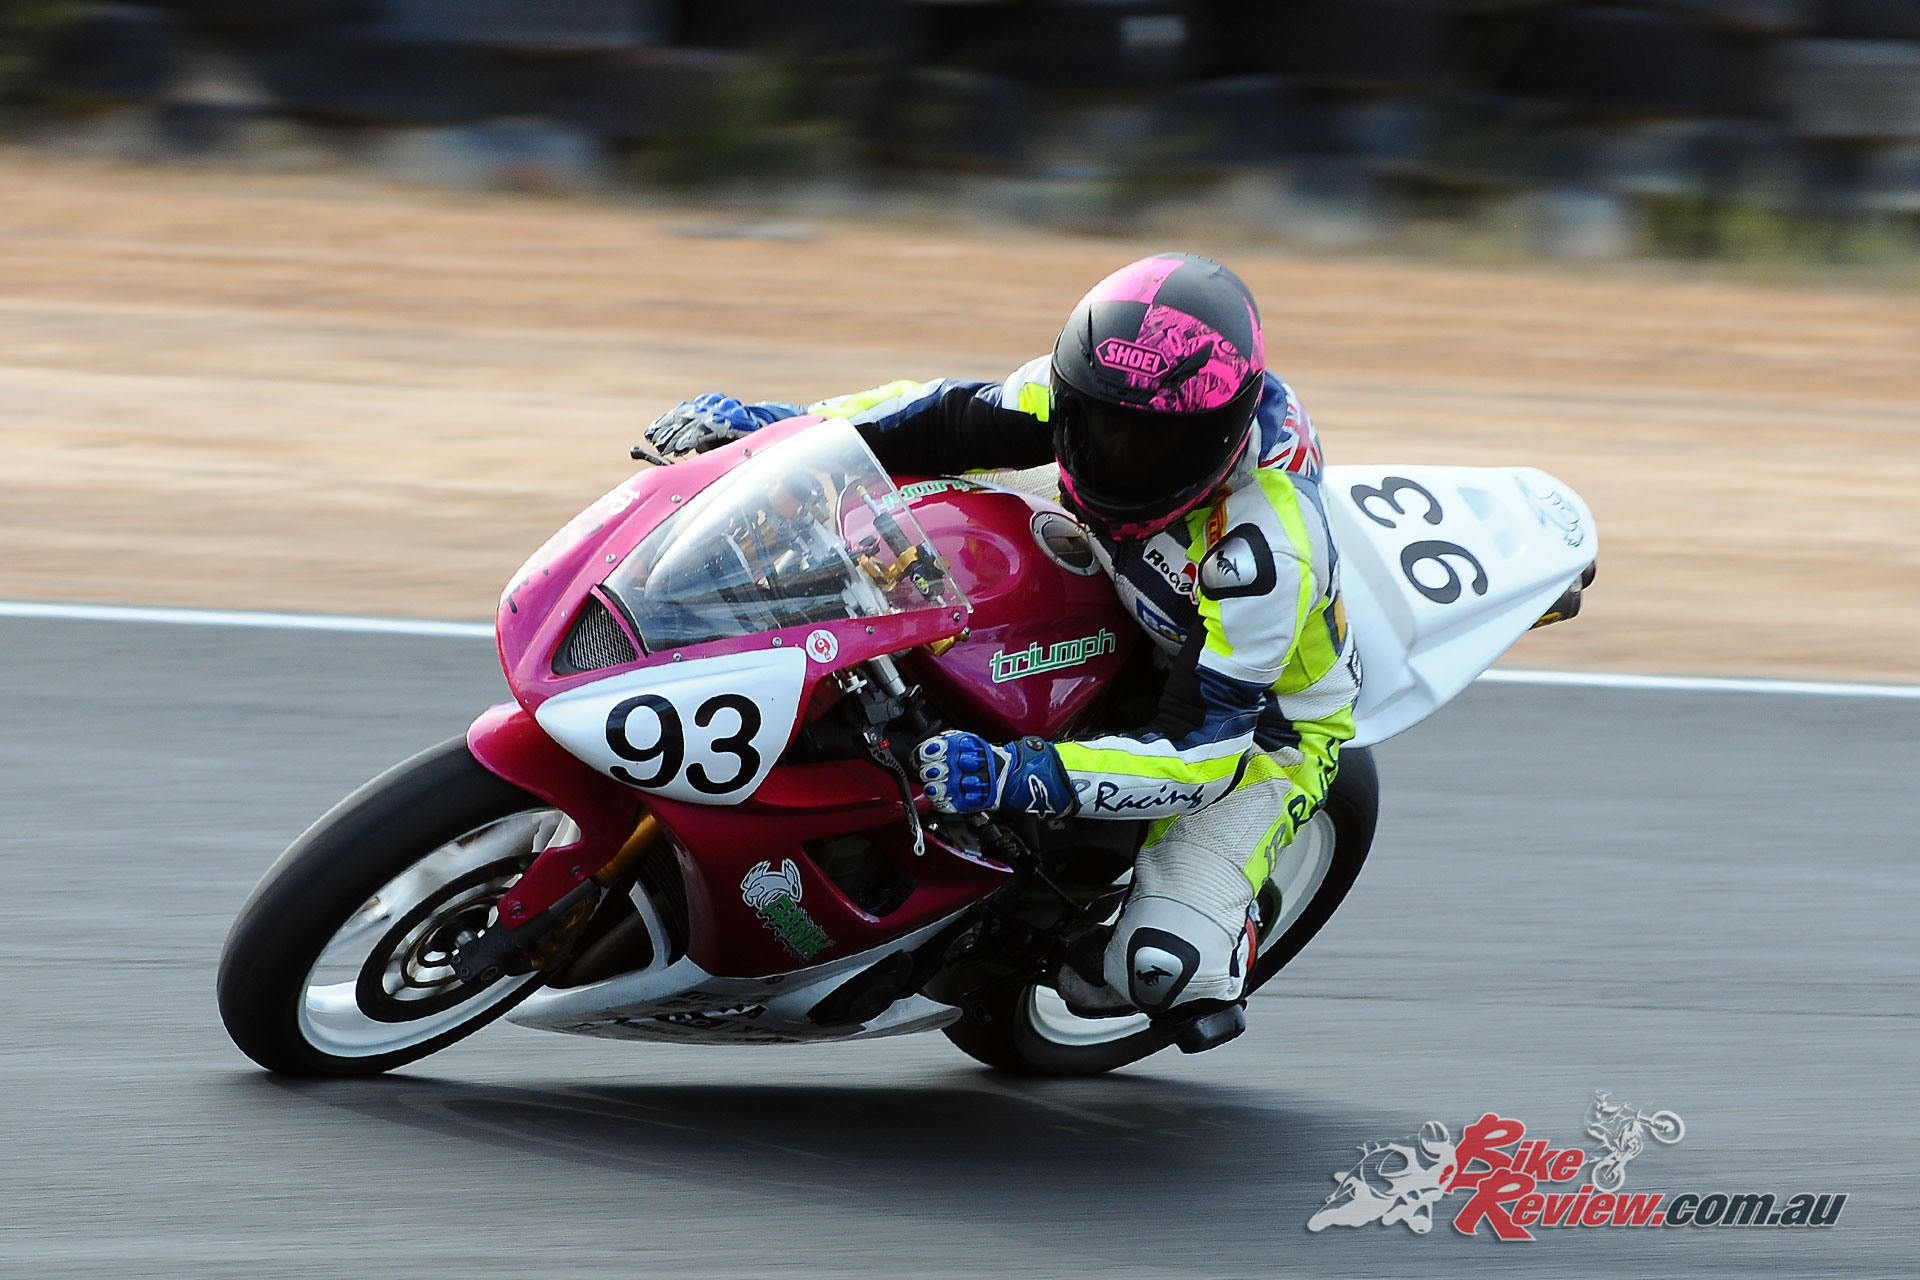 Jessica Boujos on her Triumph 675 in the Clubman class